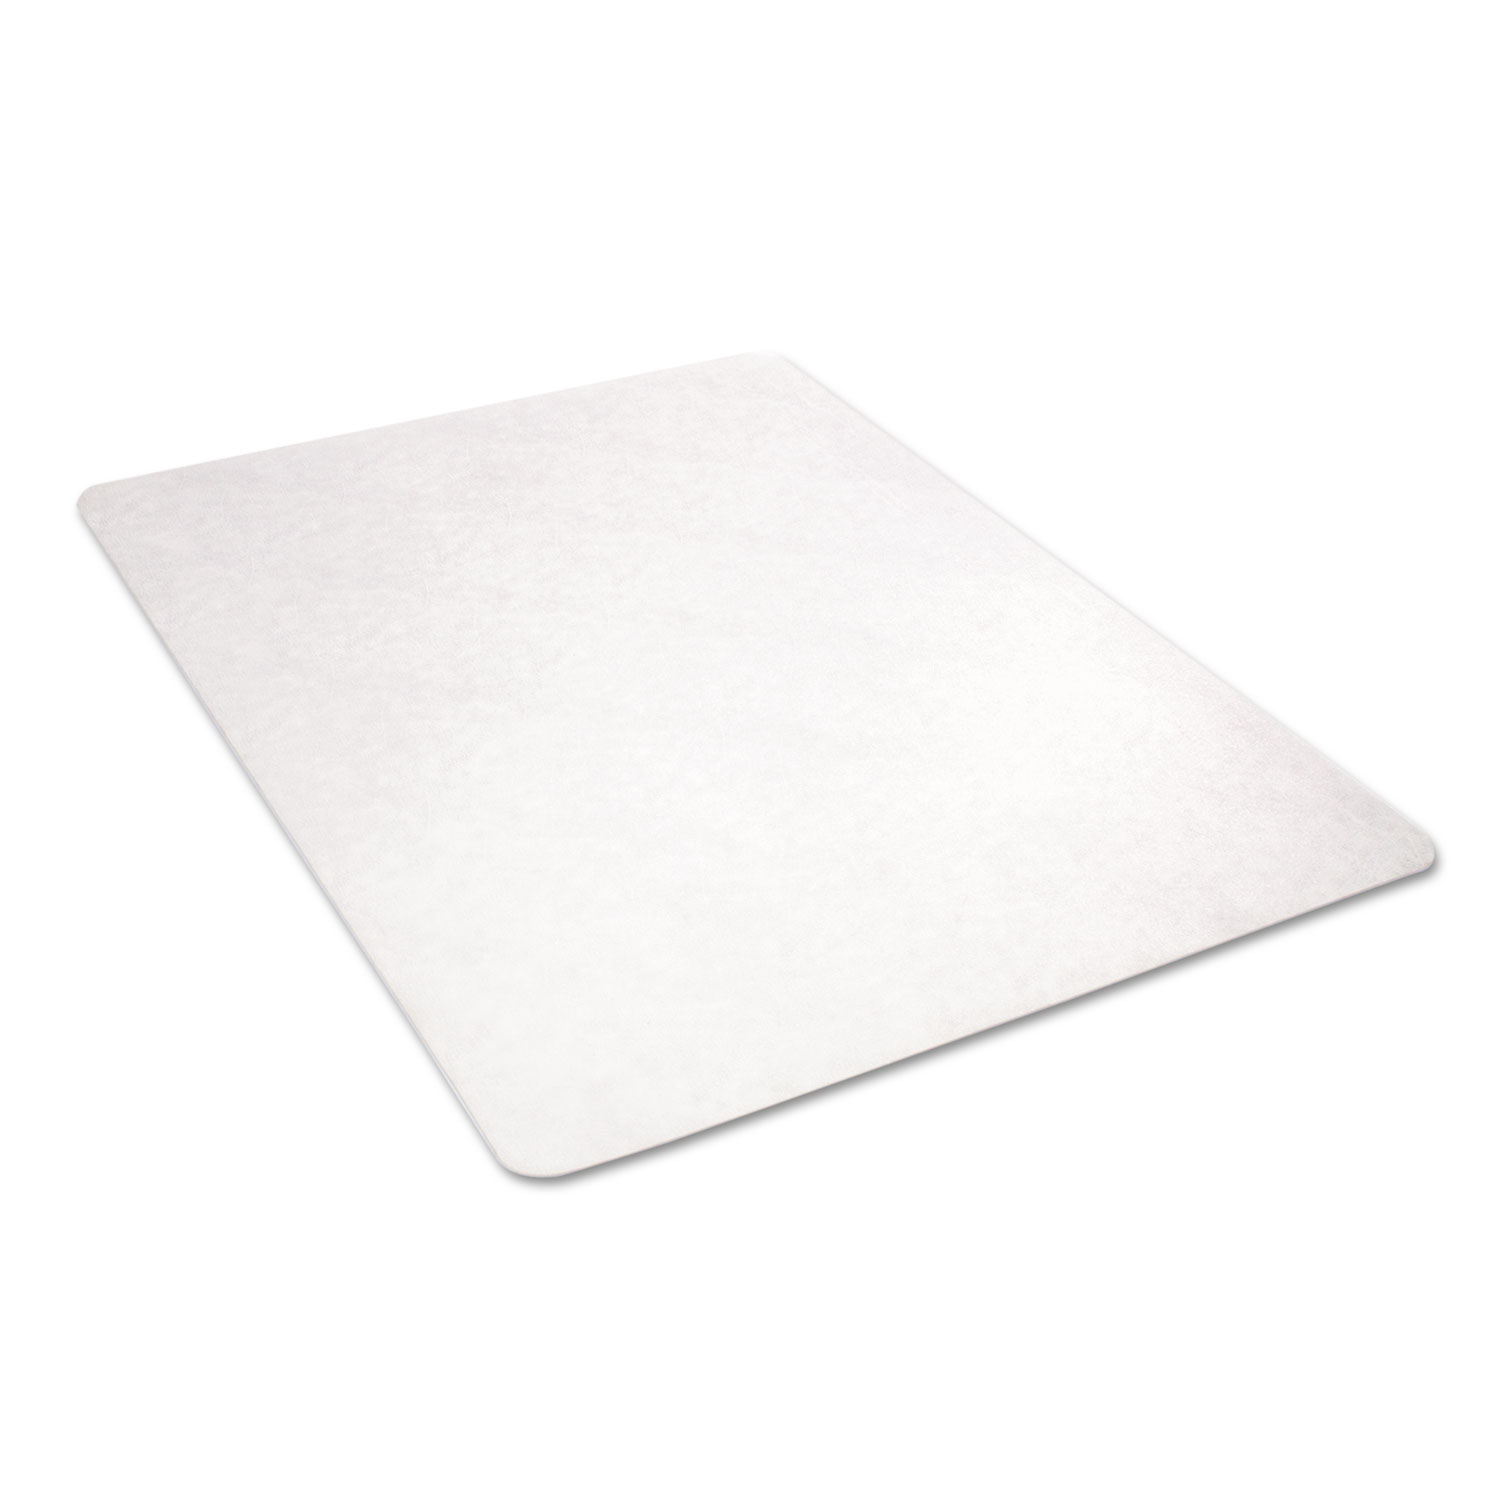 office chair mat 60 x 72 cheap theater chairs economat all day use for hard floors by deflecto